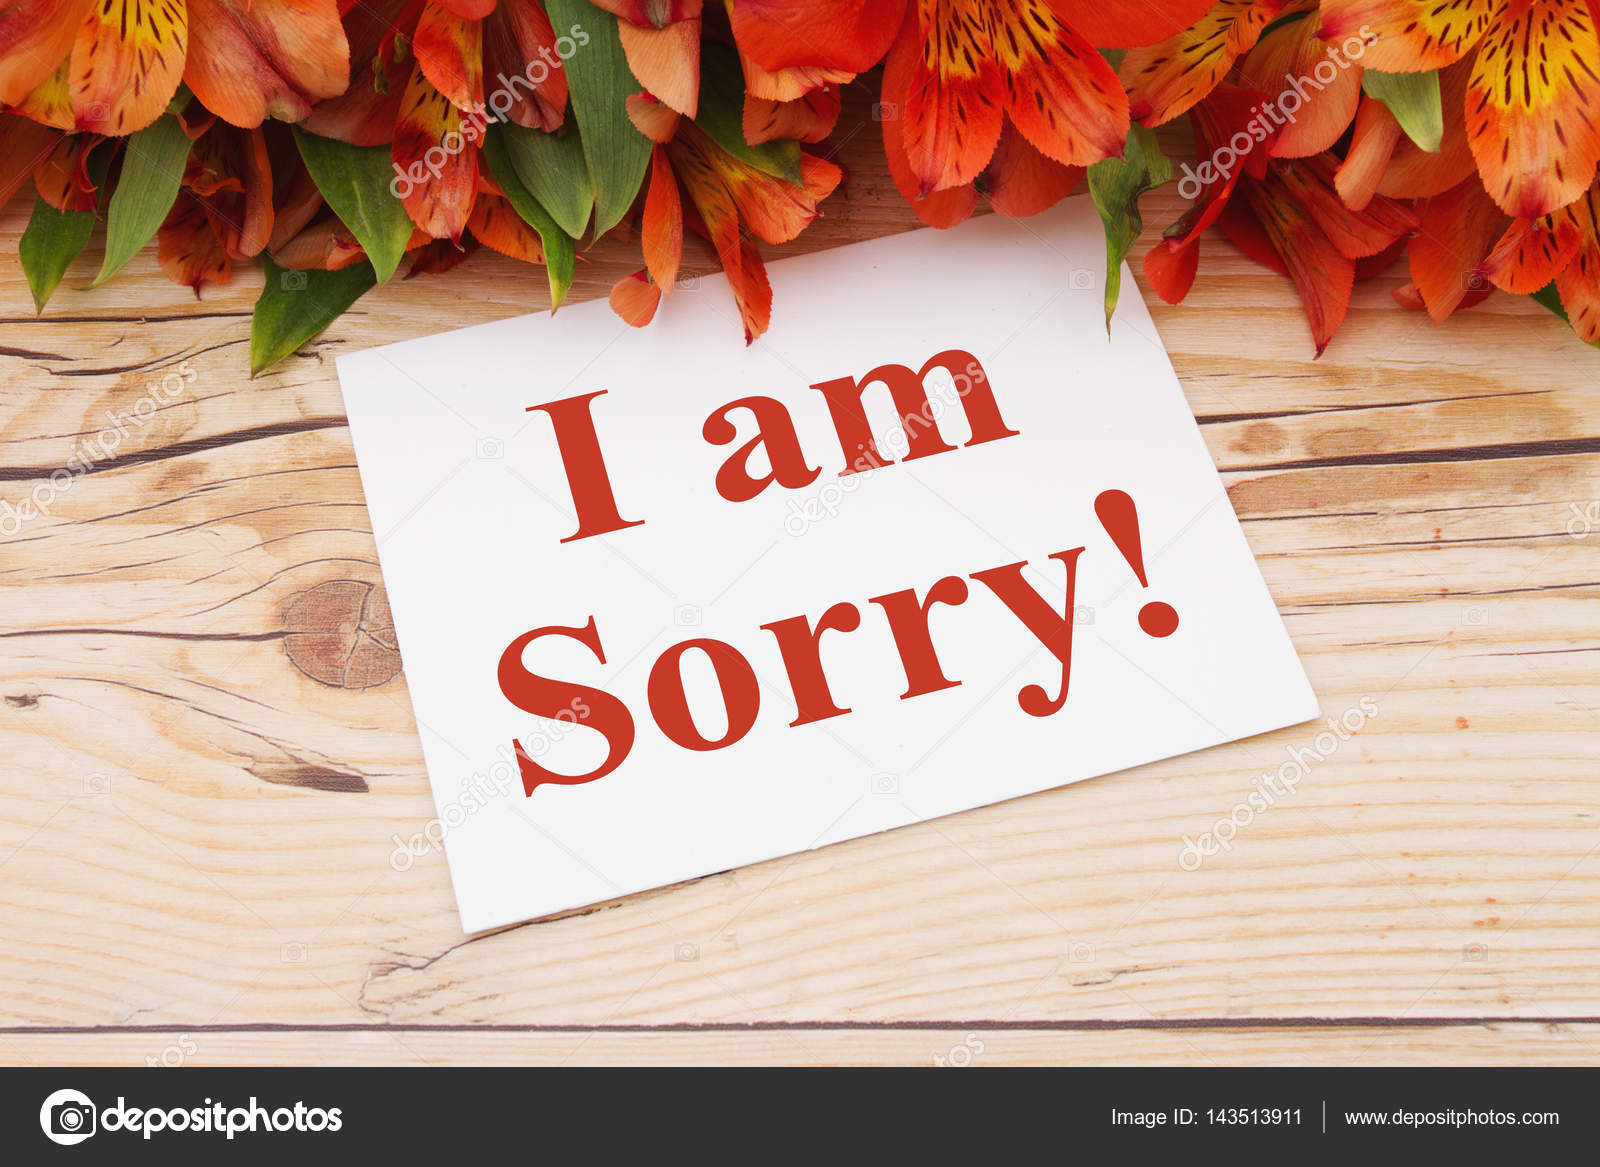 I am sorry message stock photo karenr 143513911 i am sorry message a bouquet of orange lilies on weathered wood with a greeting card with text i am sorry photo by karenr m4hsunfo